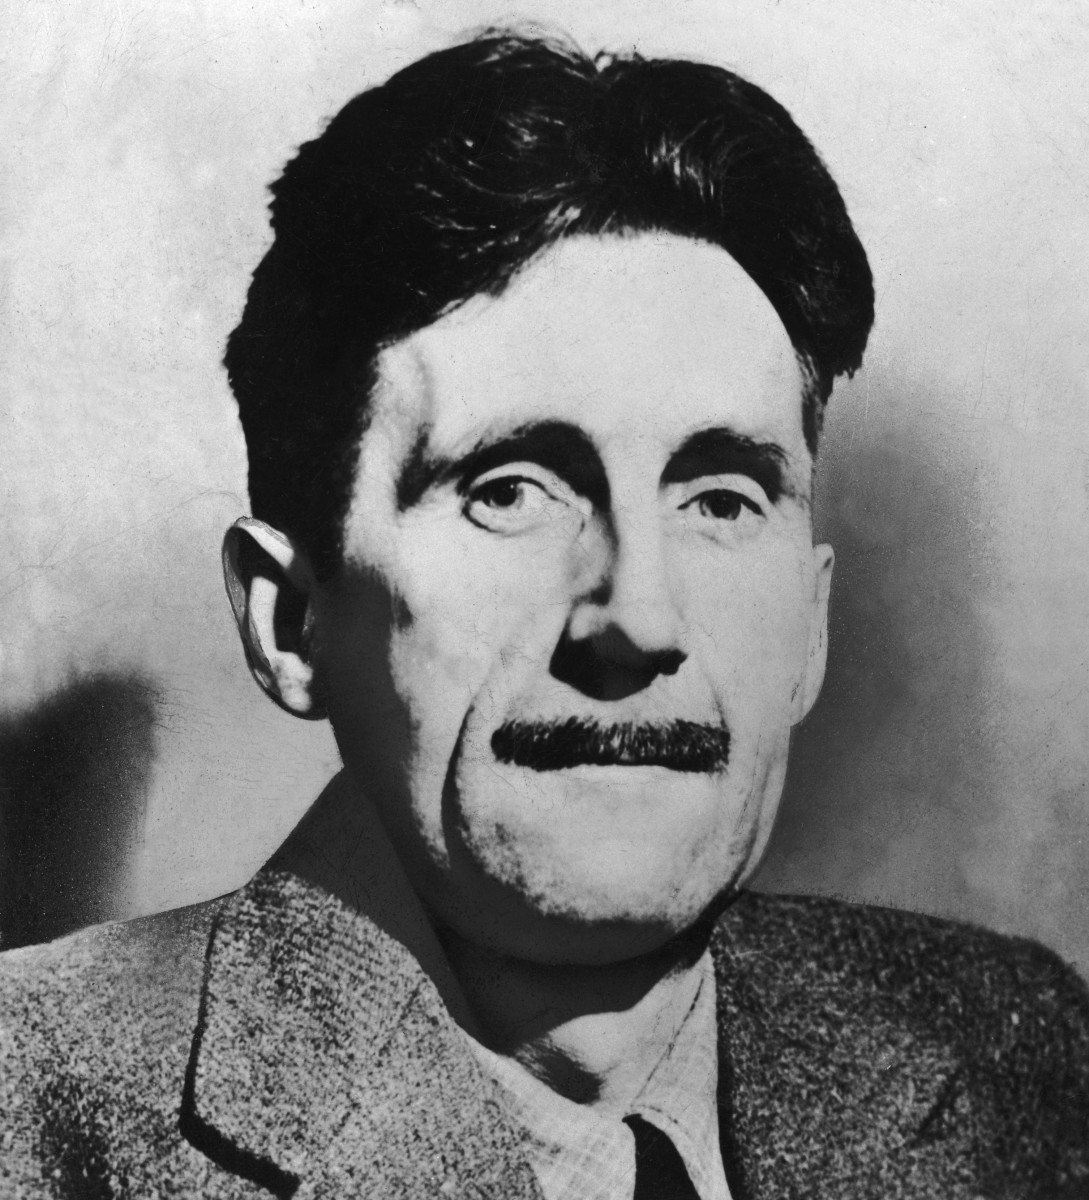 george orwell author journalist com george orwell 9429833 1 raw